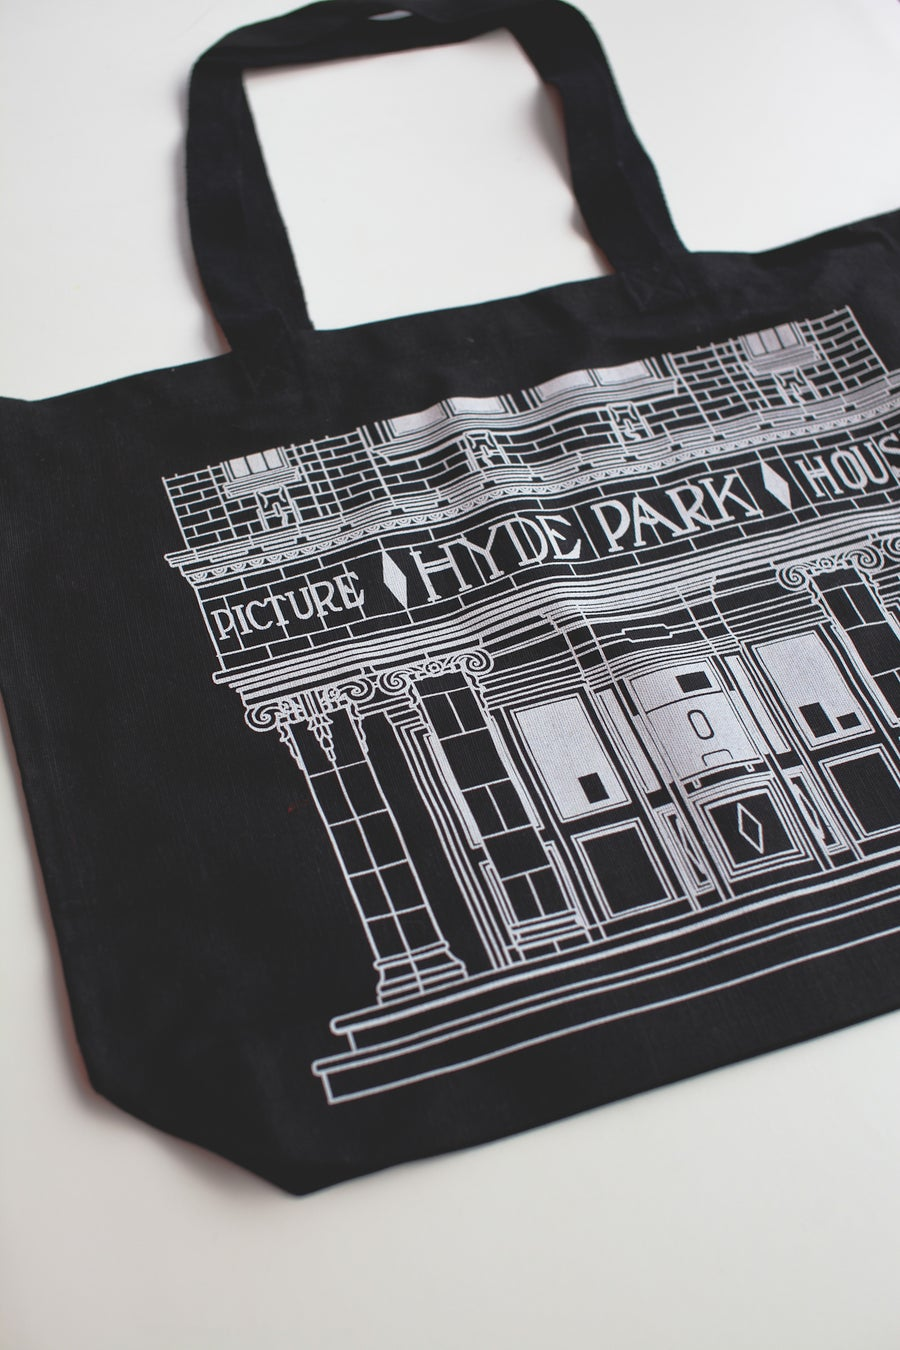 Image of Screen-Printed Tote Bag - Landscape